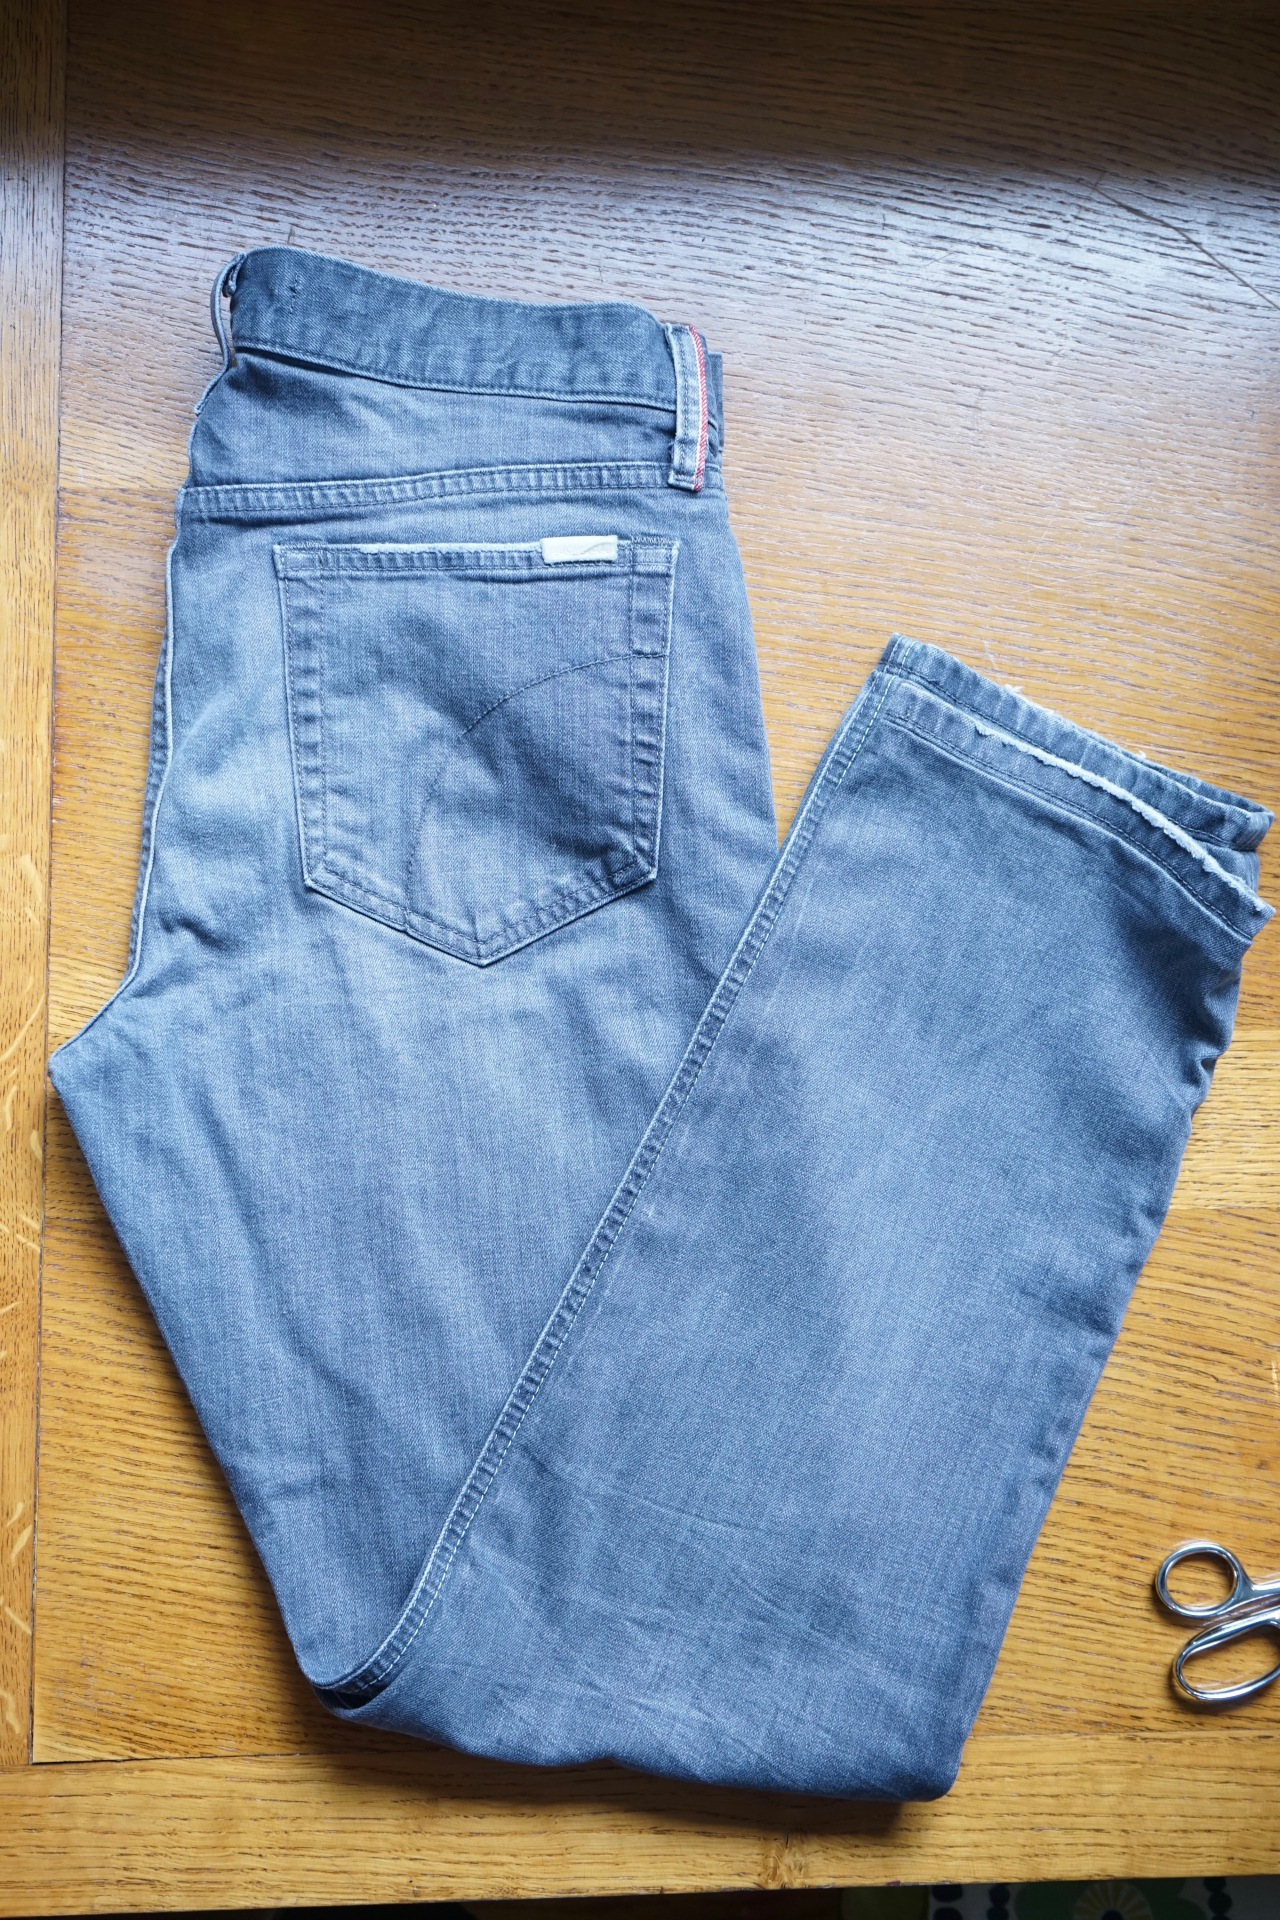 HeyGirlfriend.Net ~ How to Sew and Original Jean Hem